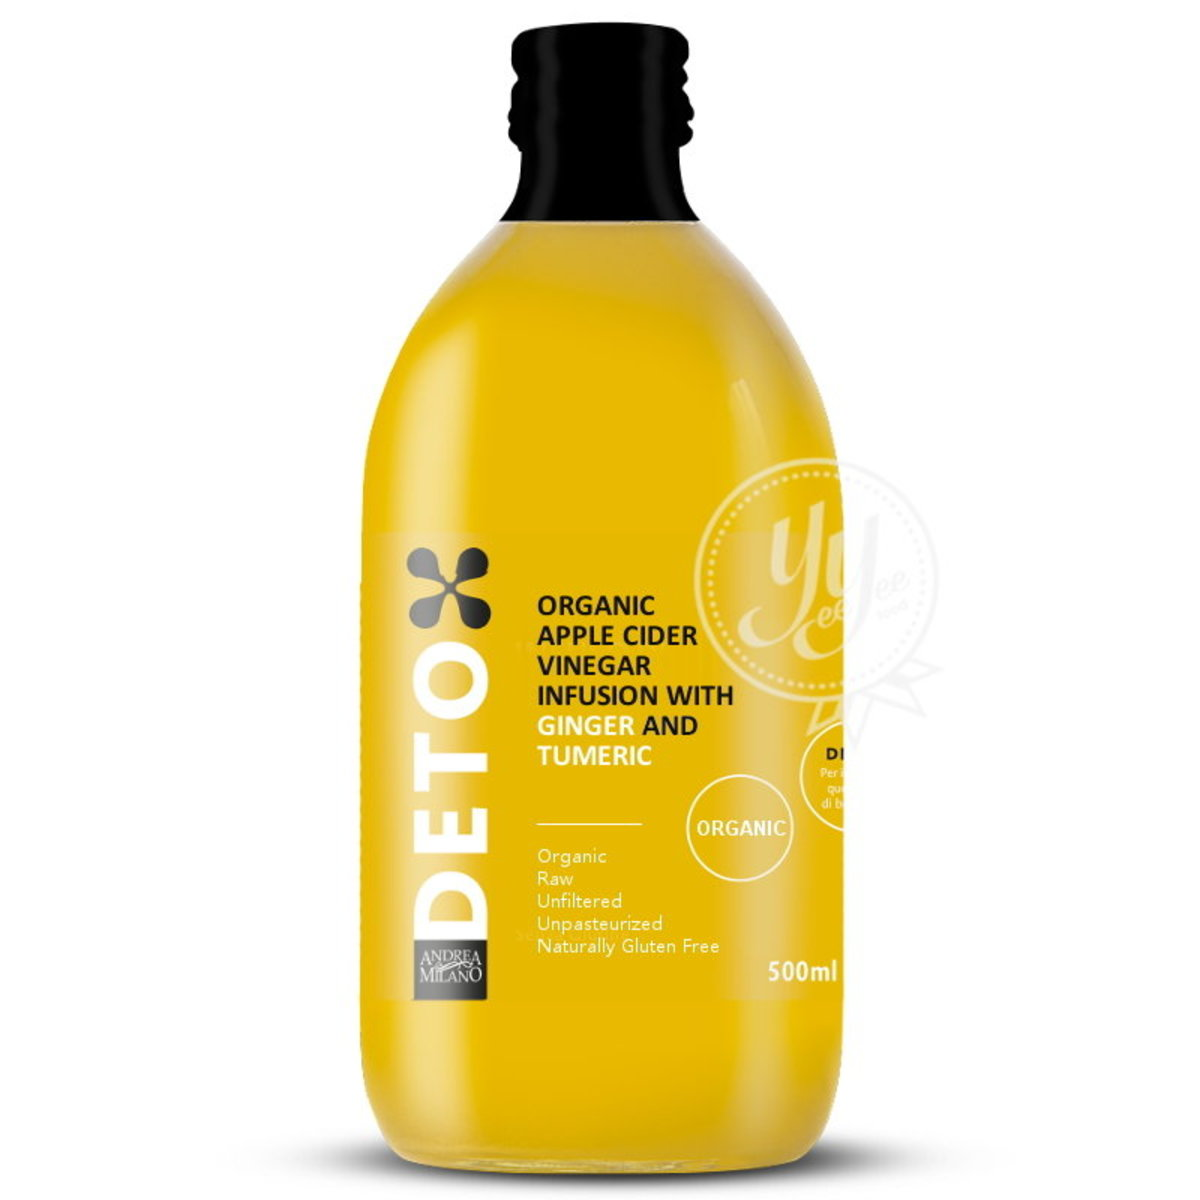 Italian Organic Apple Cider Vinegar Infusion With Ginger and Tumeric 500ml